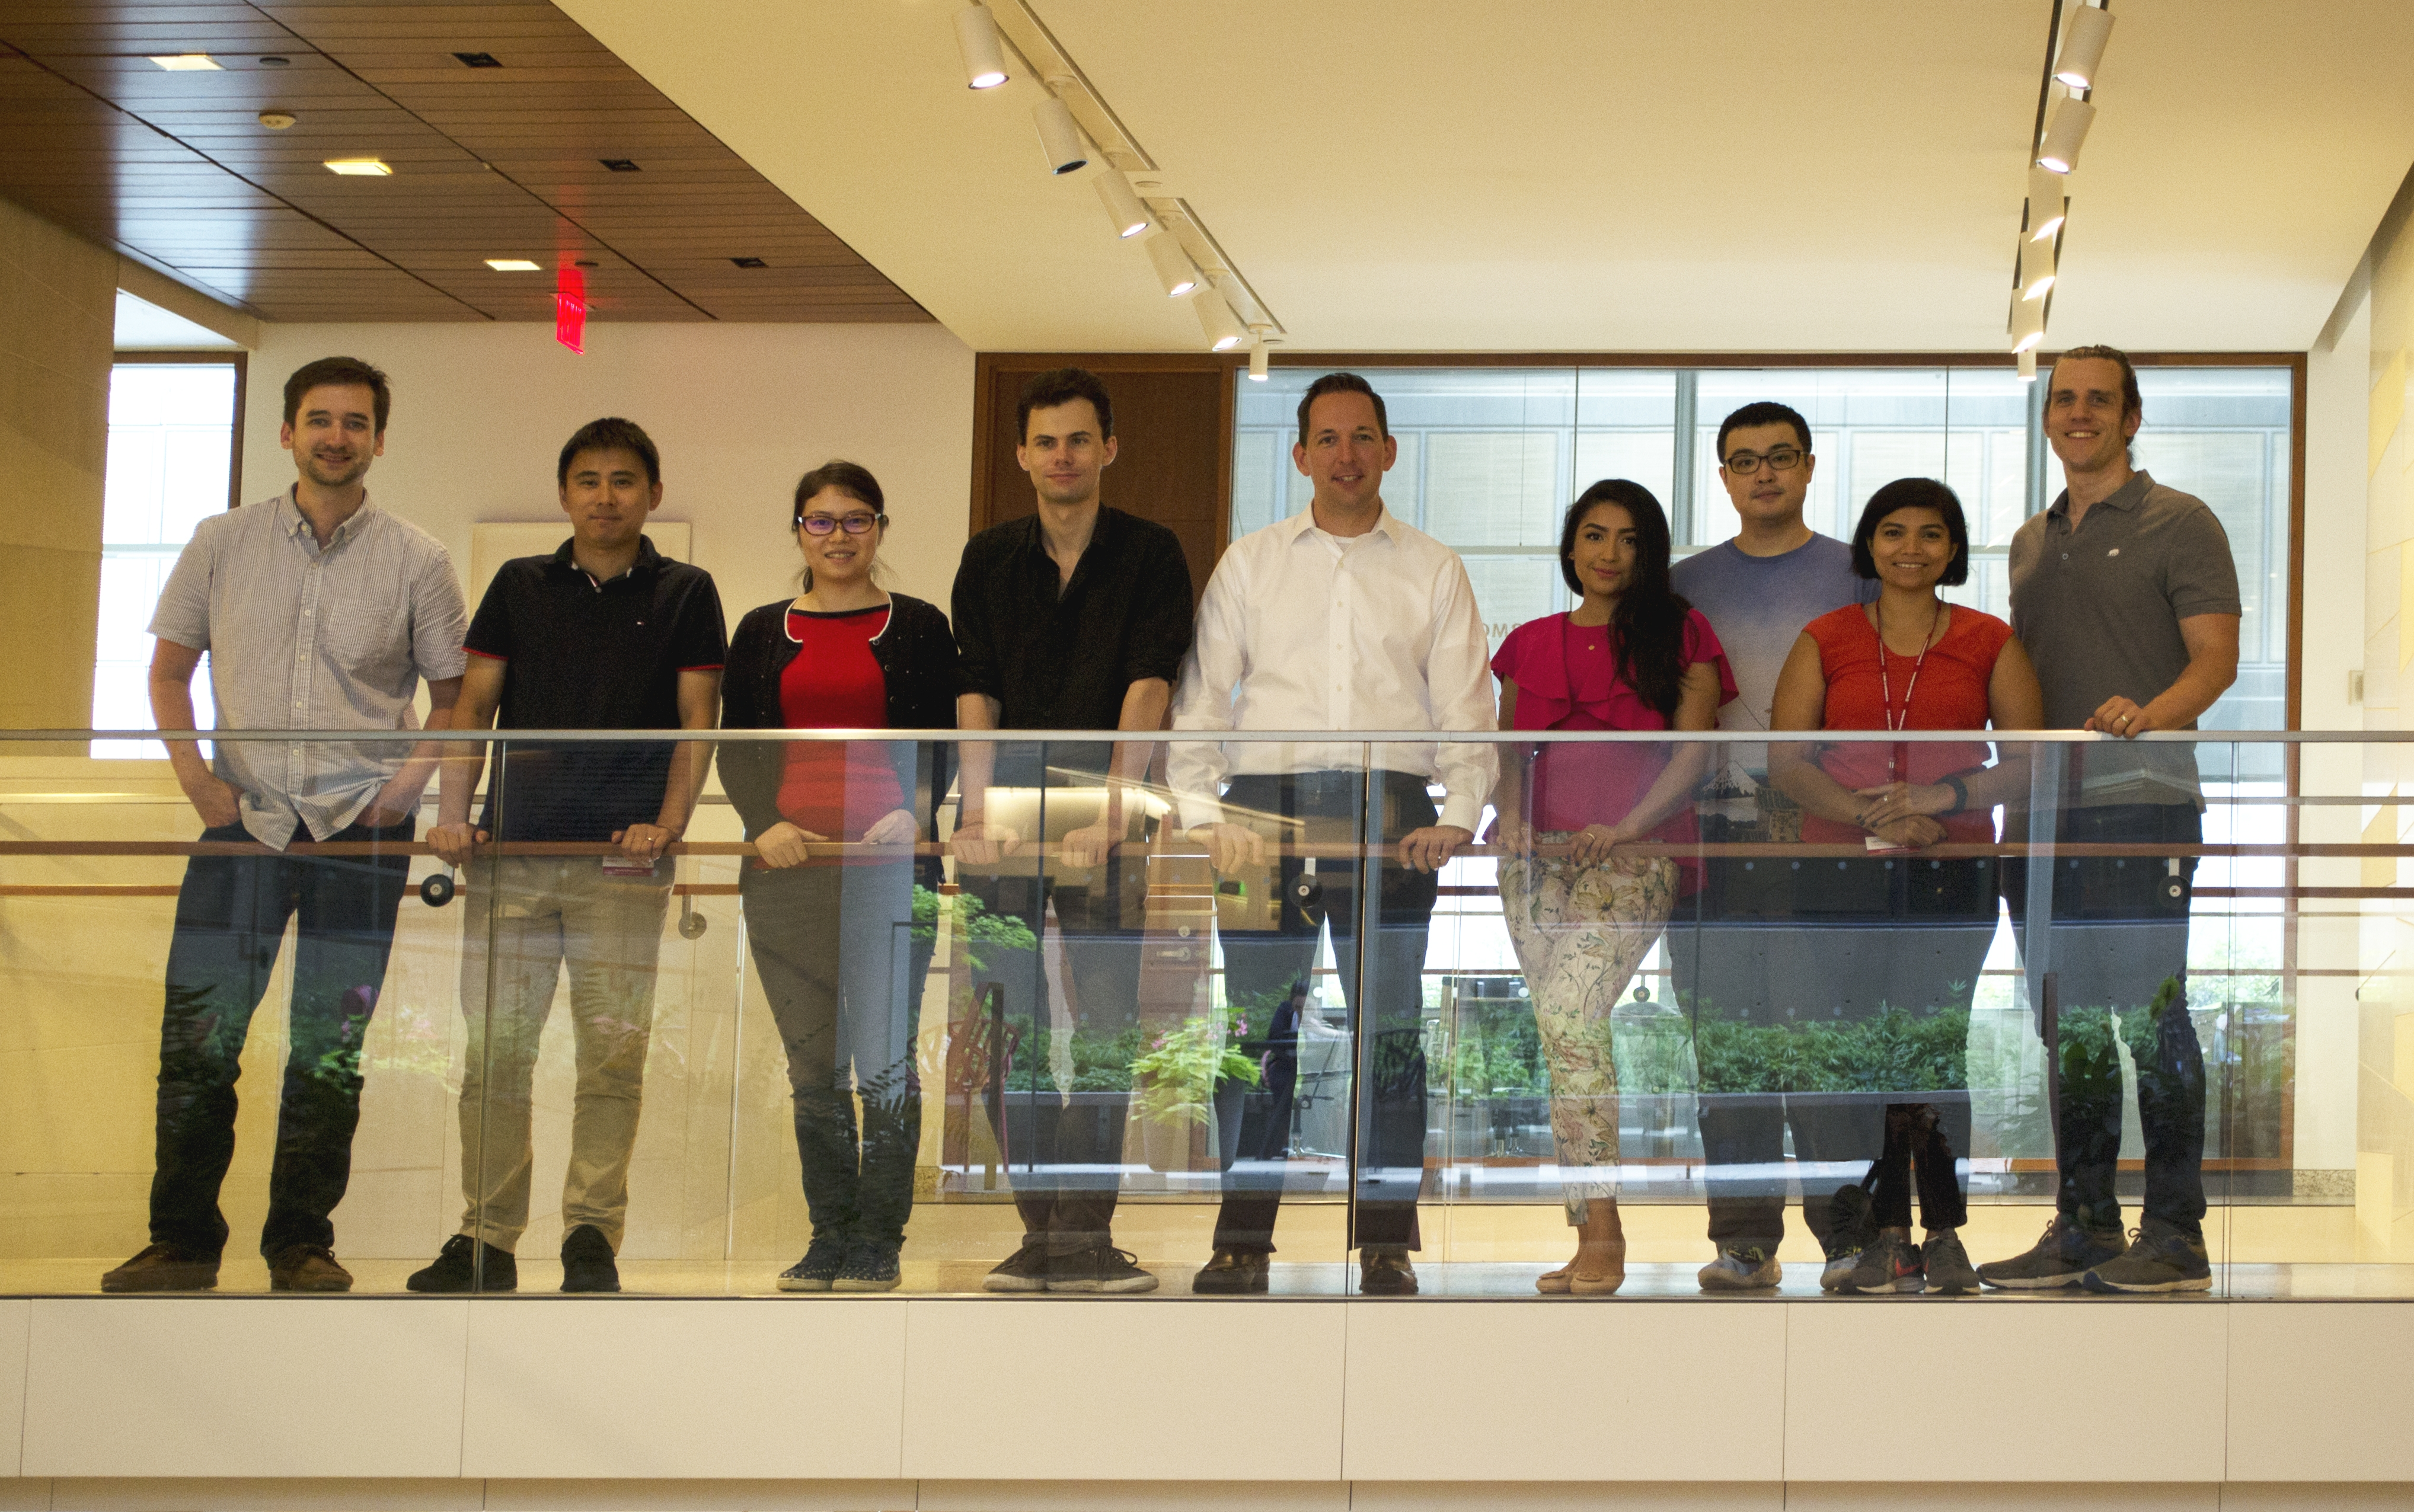 The Sonnenberg Lab (from left to right): John B. Grigg, Dr. Lei Zhou, Dr. Wenqing Zhou, Dr. Jeremy Goc, Dr. Gregory F. Sonnenberg, Samah Mozumder, Dr. Fei Teng, Dr. Ann Joseph, and Dr. Nicholas Bessman. Credit: Jennifer Conrad.